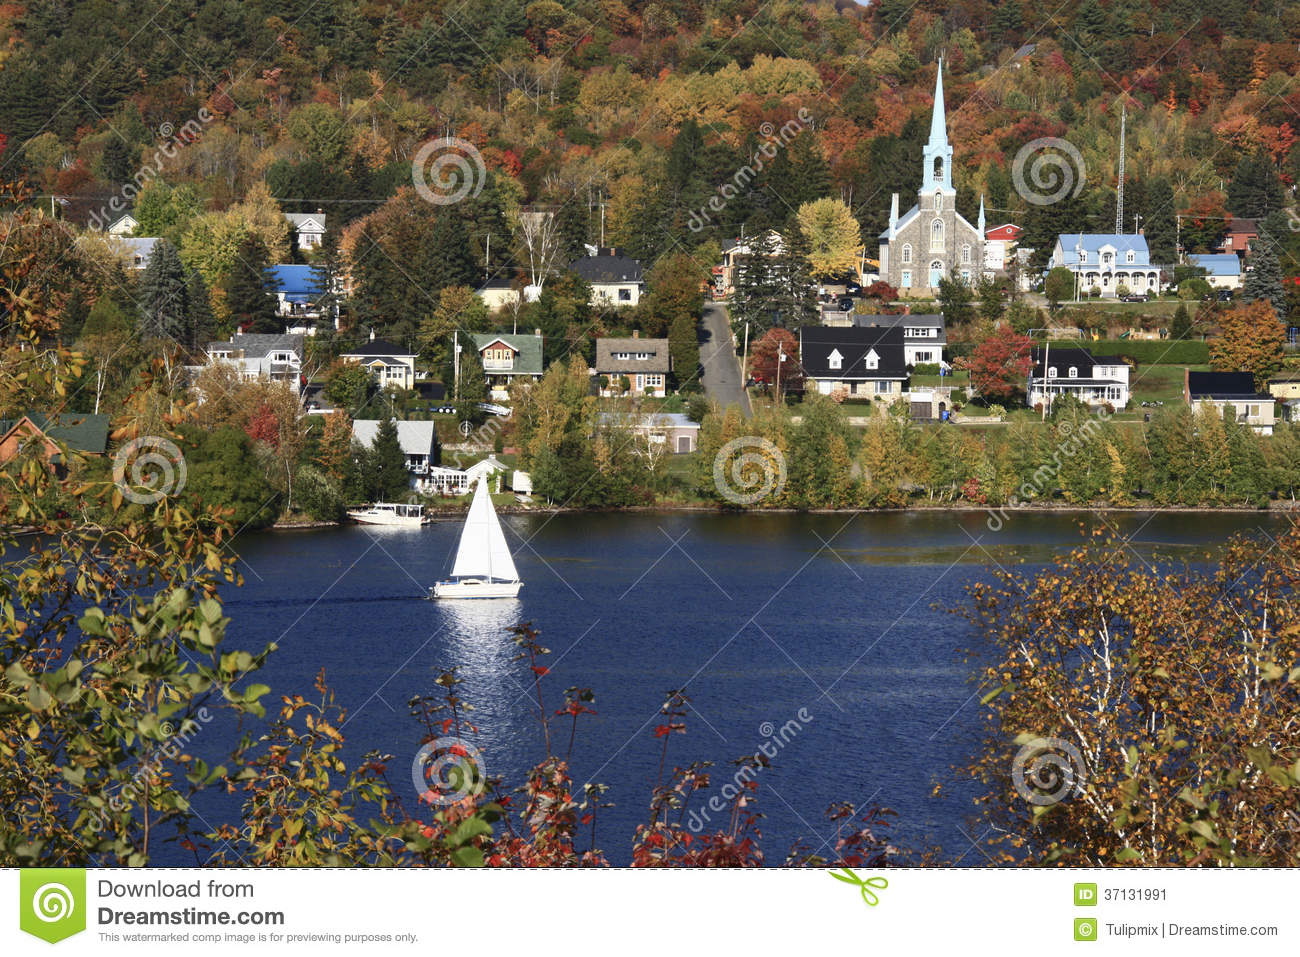 Fall In Maine Wallpaper Autumn Scenery In Quebec Canada Stock Image Image 37131991